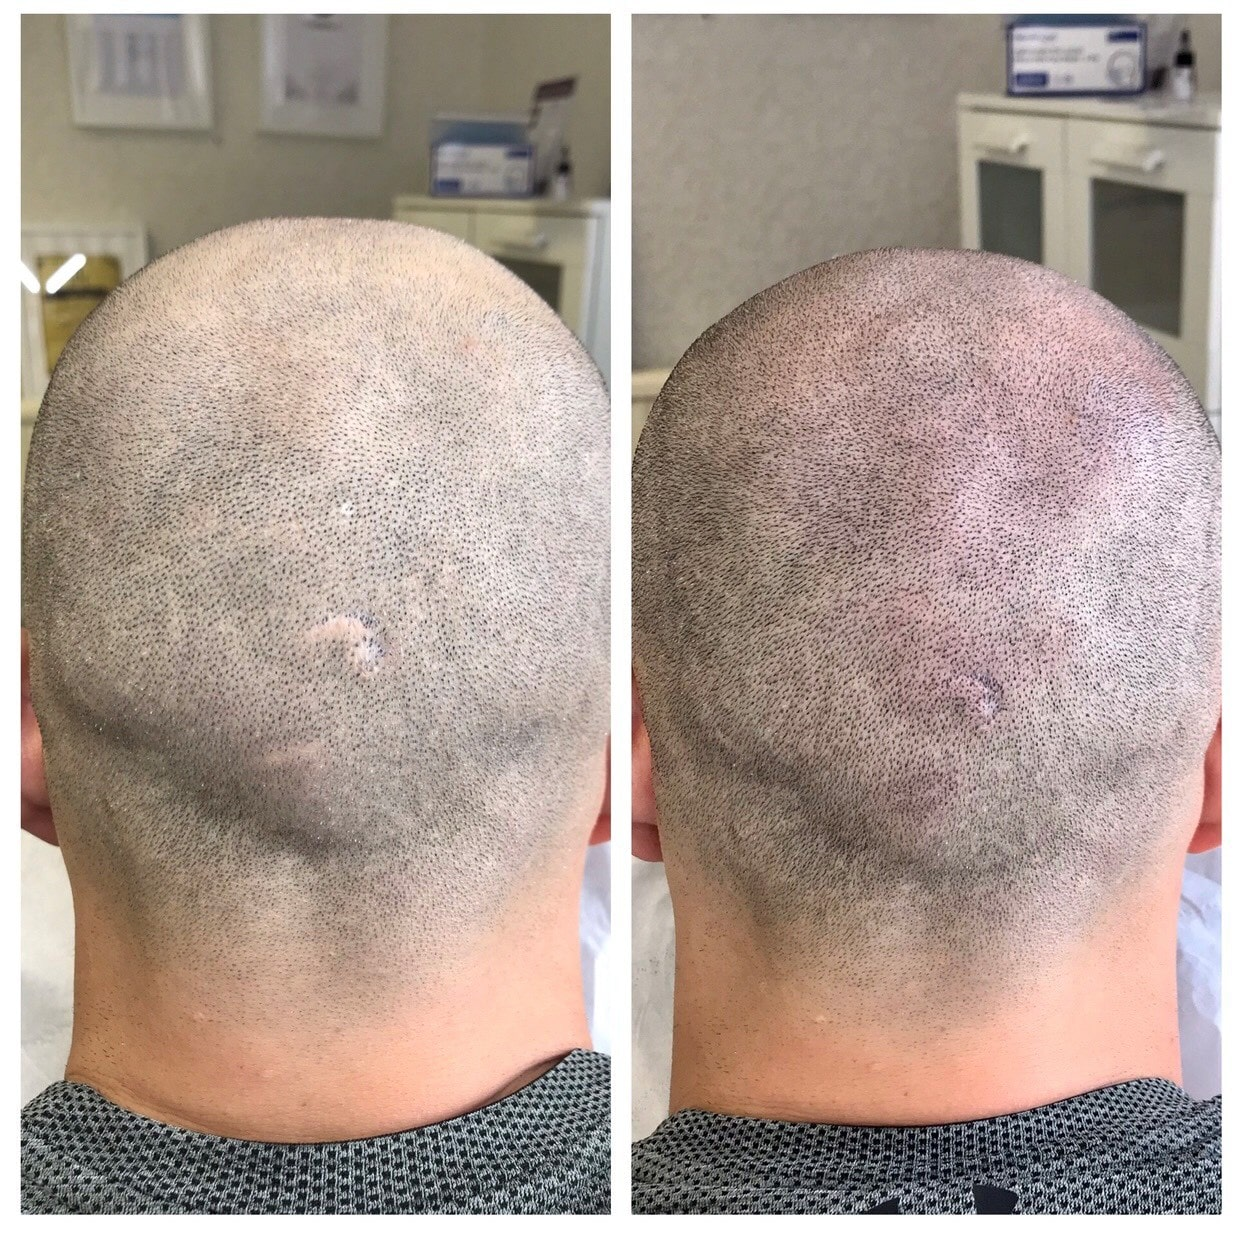 Before and after pictures of a man that has had scalp micropigmentation